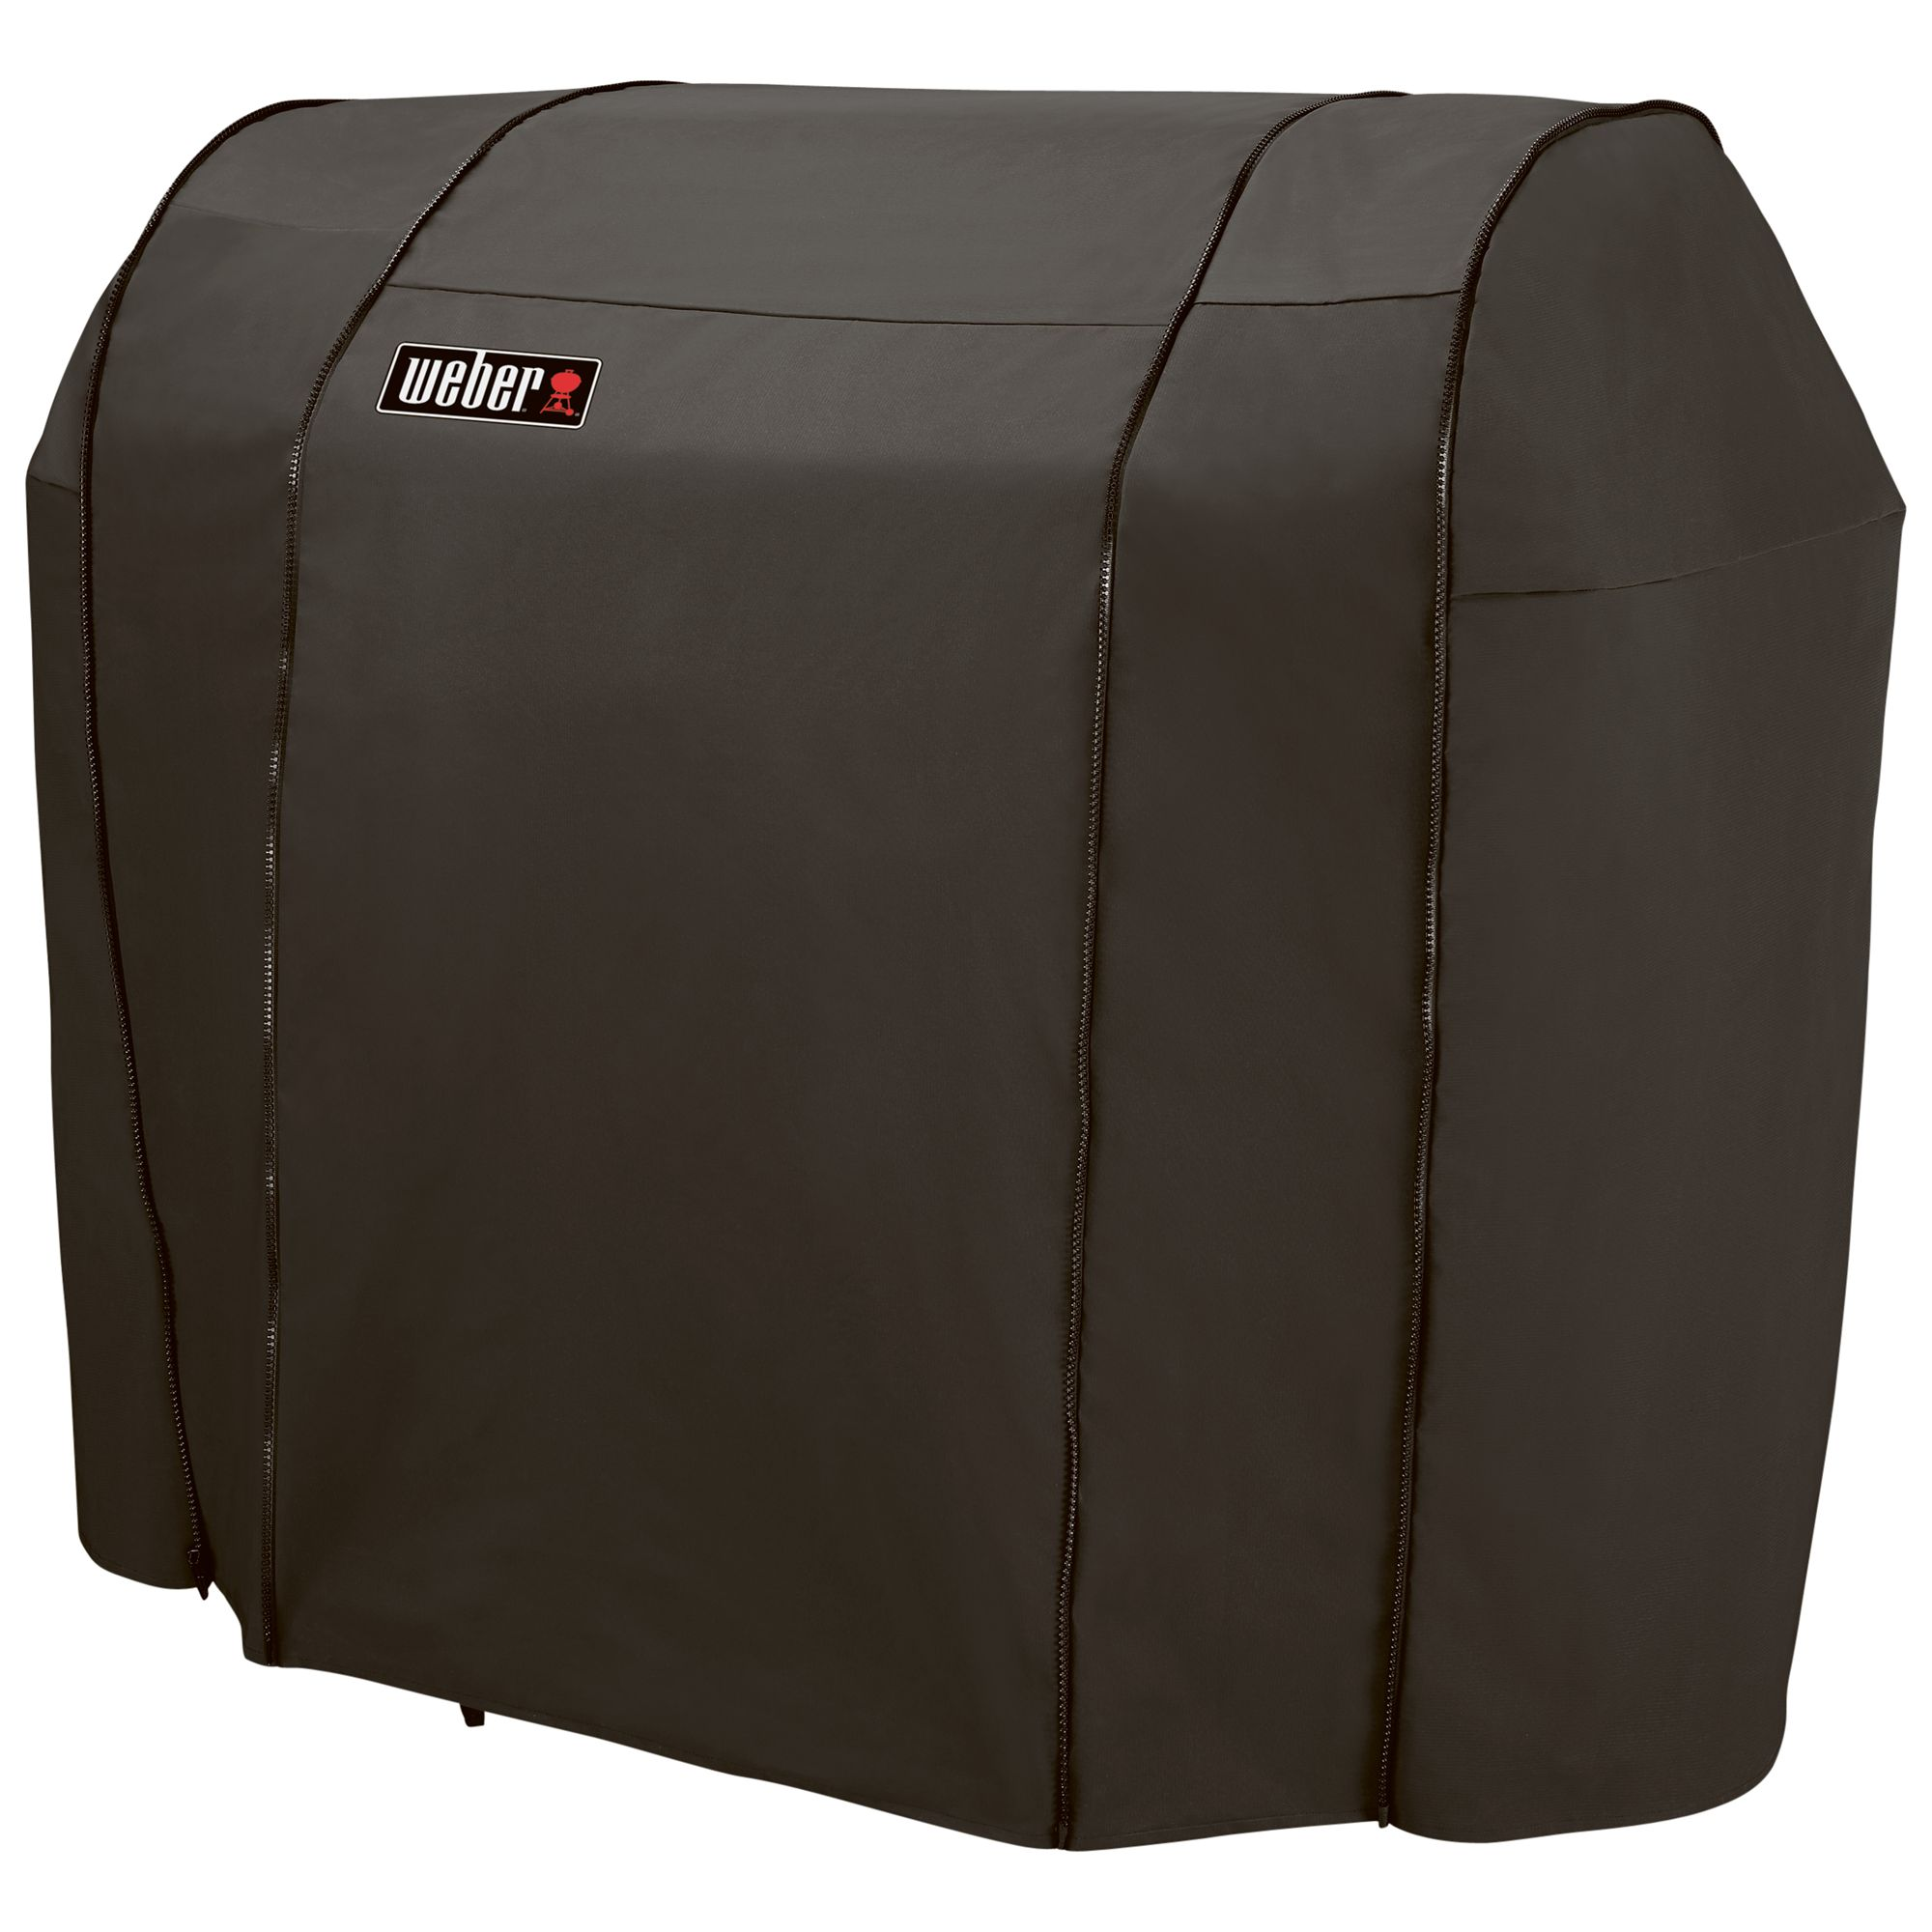 Weber Spirit Barbecue Cover